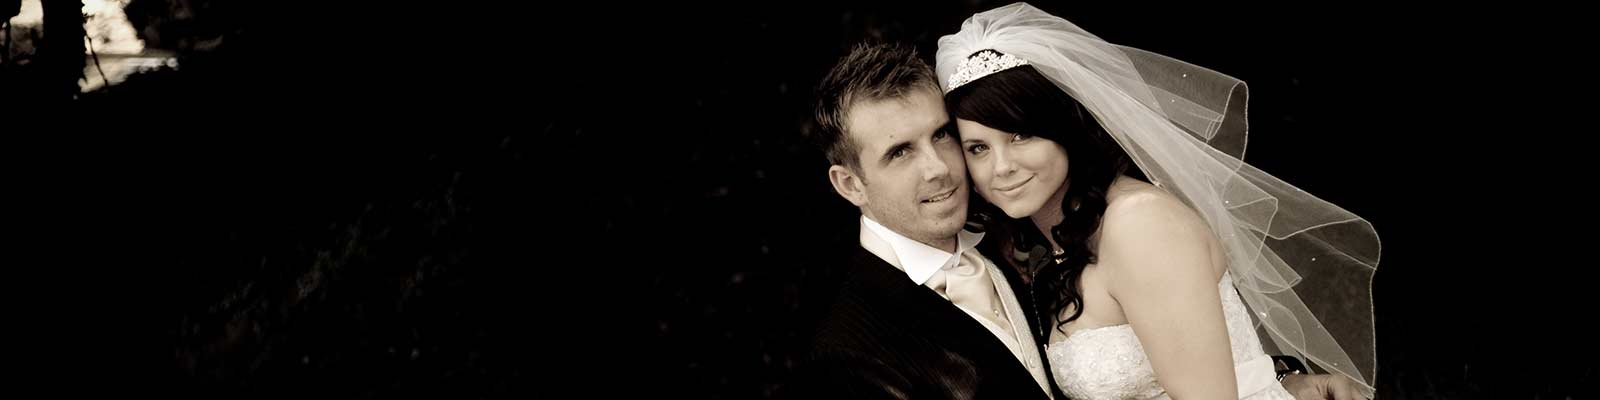 Leeds Wedding Photographer, wedding photography Leeds, West Yorkshire